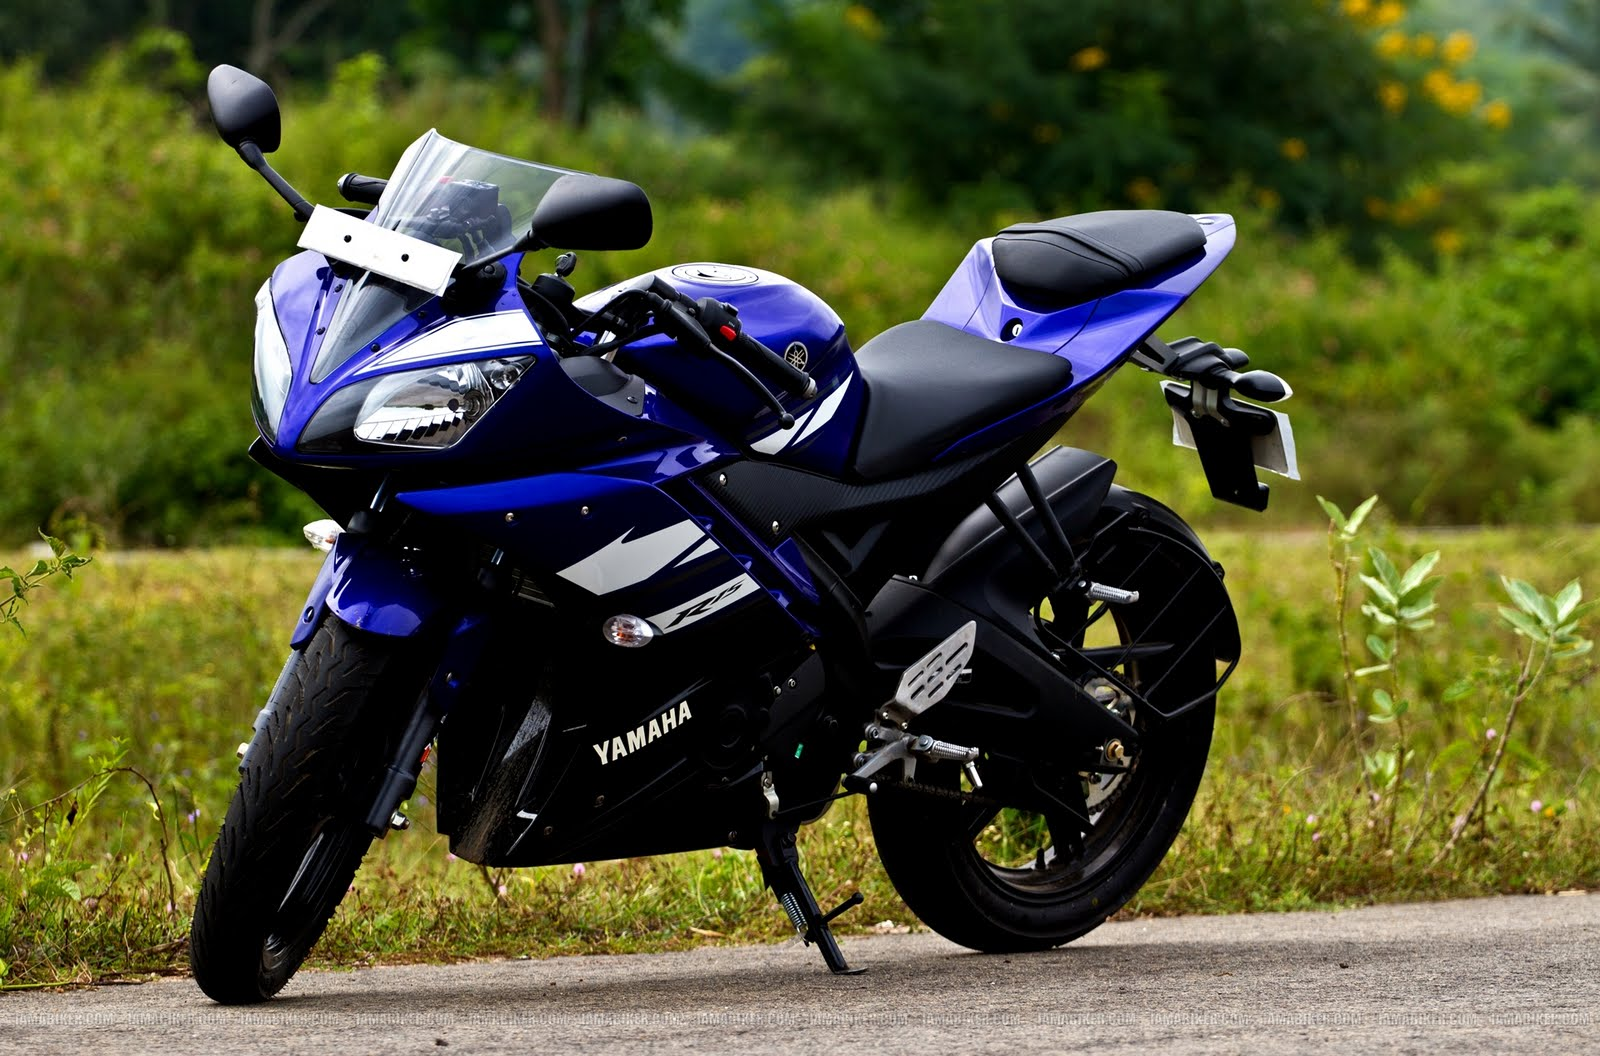 all new pix1: hd wallpapers of yamaha r15 version 2.0